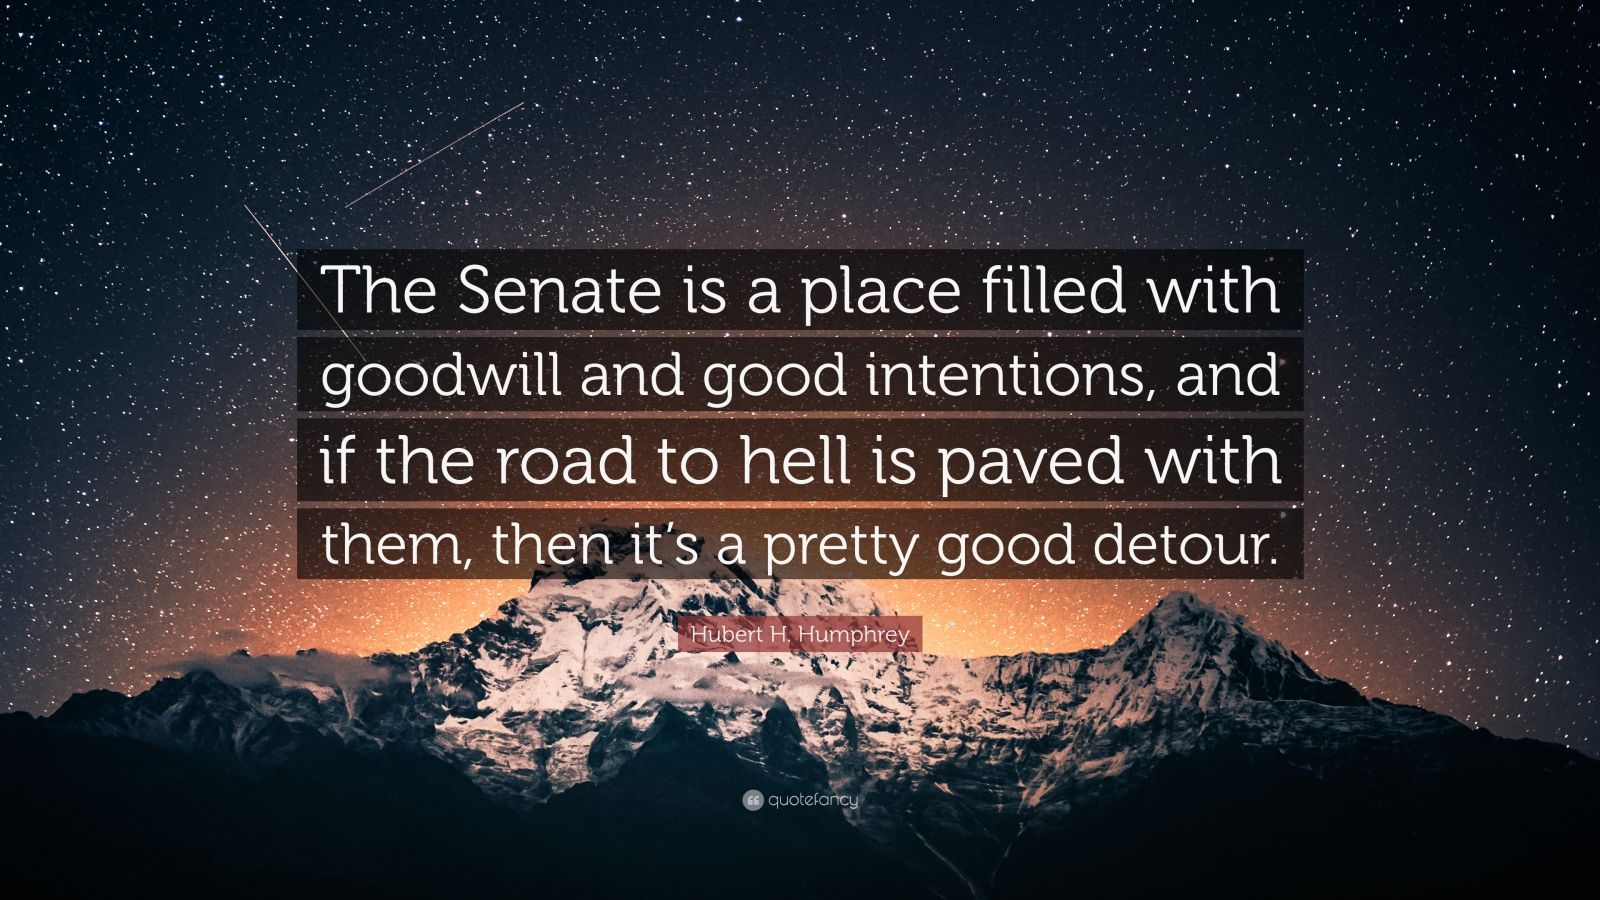 """Hubert H. Humphrey Quote: """"The Senate is a place filled with goodwill and good intentions, and if the road to hell is paved with them, then it's a pretty good detour."""""""